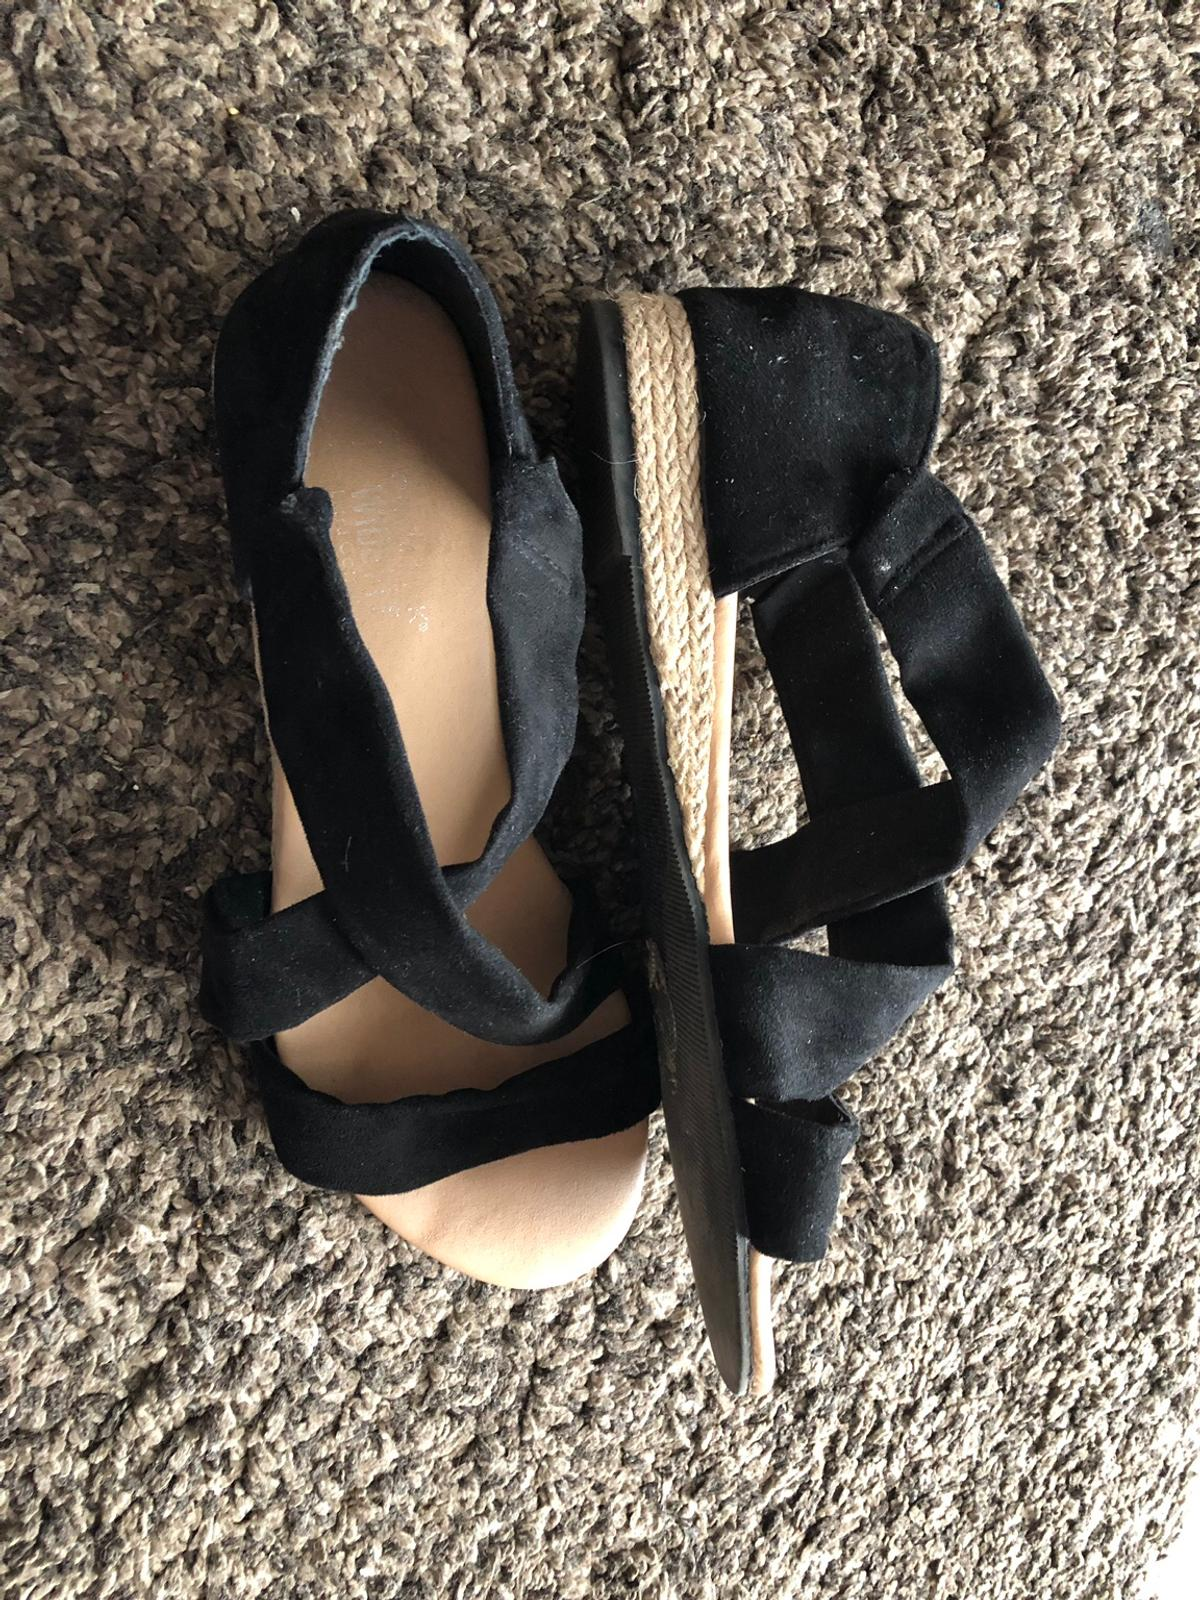 948b76ae6 Ladies black strappy sandals size 6 in WS10 Sandwell for £2.00 for ...